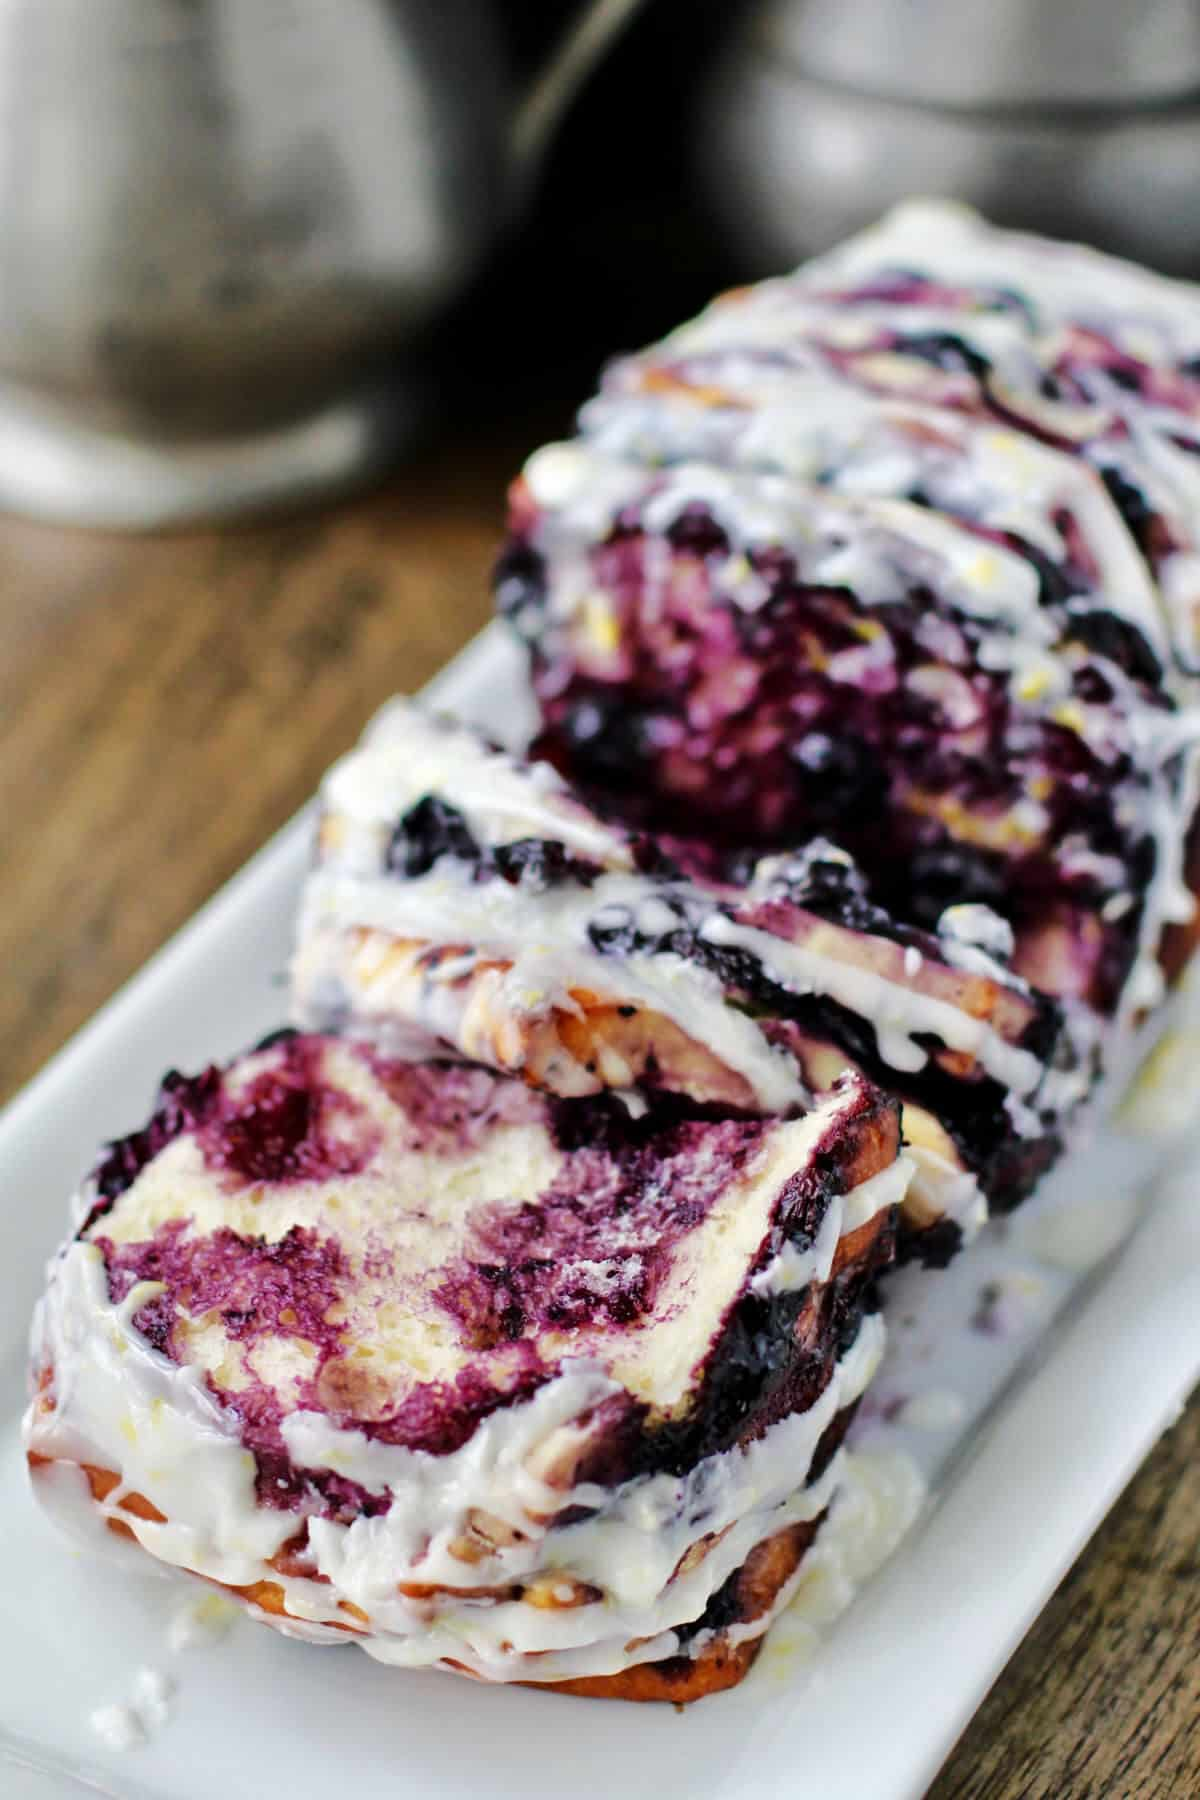 Roasted Blueberry Pull-Apart Loaf pulled apart.